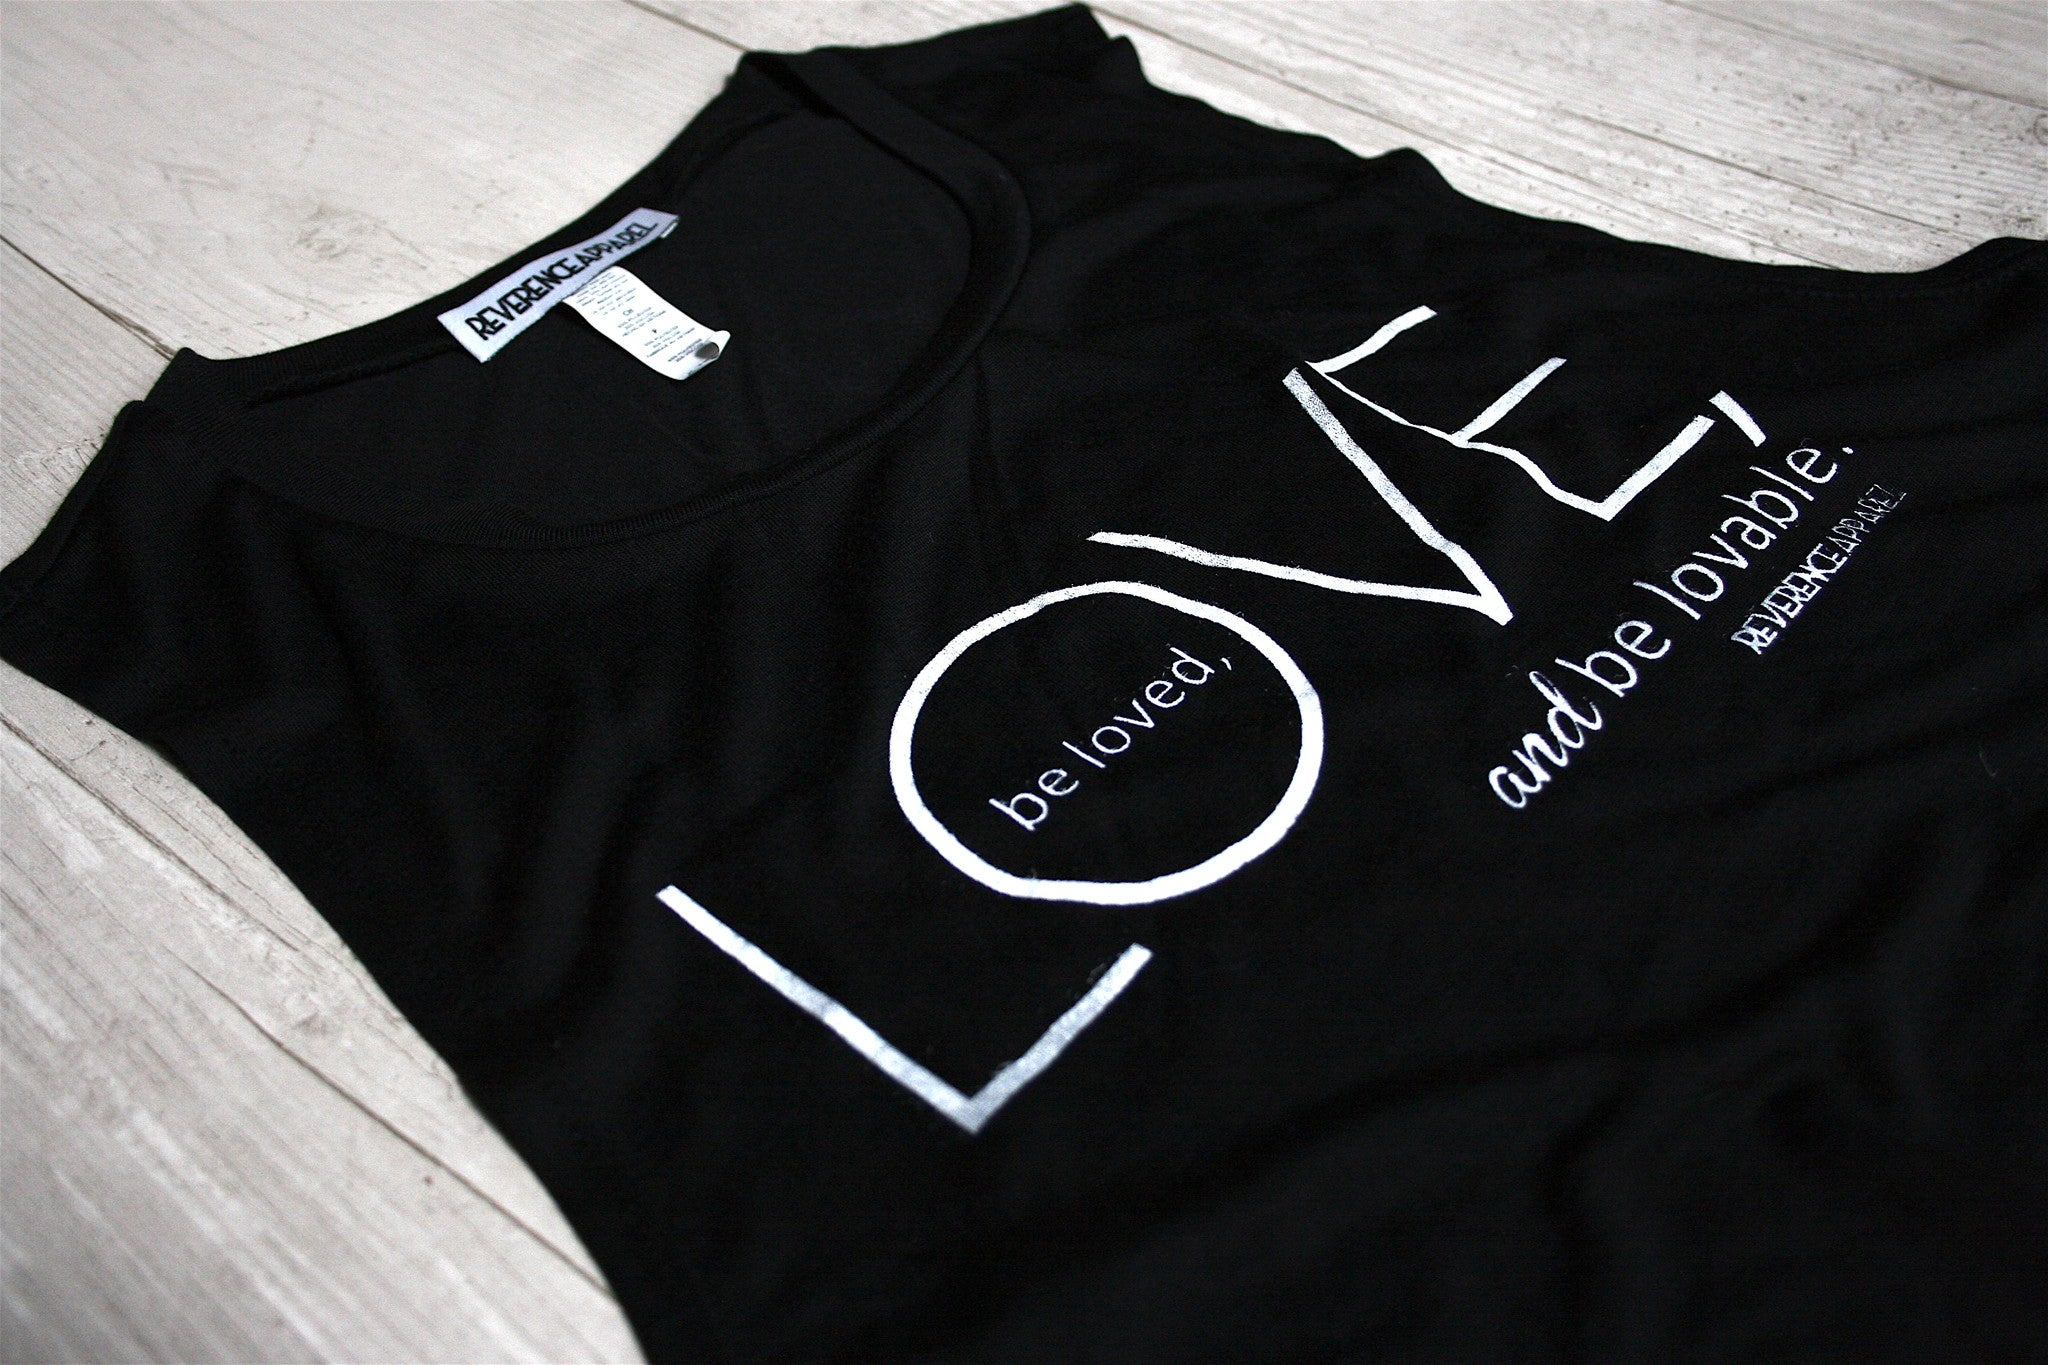 LOVE, BE LOVED, BE LOVABLE SLEEVELESS MUSCLE TANK TOP REVERENCE APPAREL